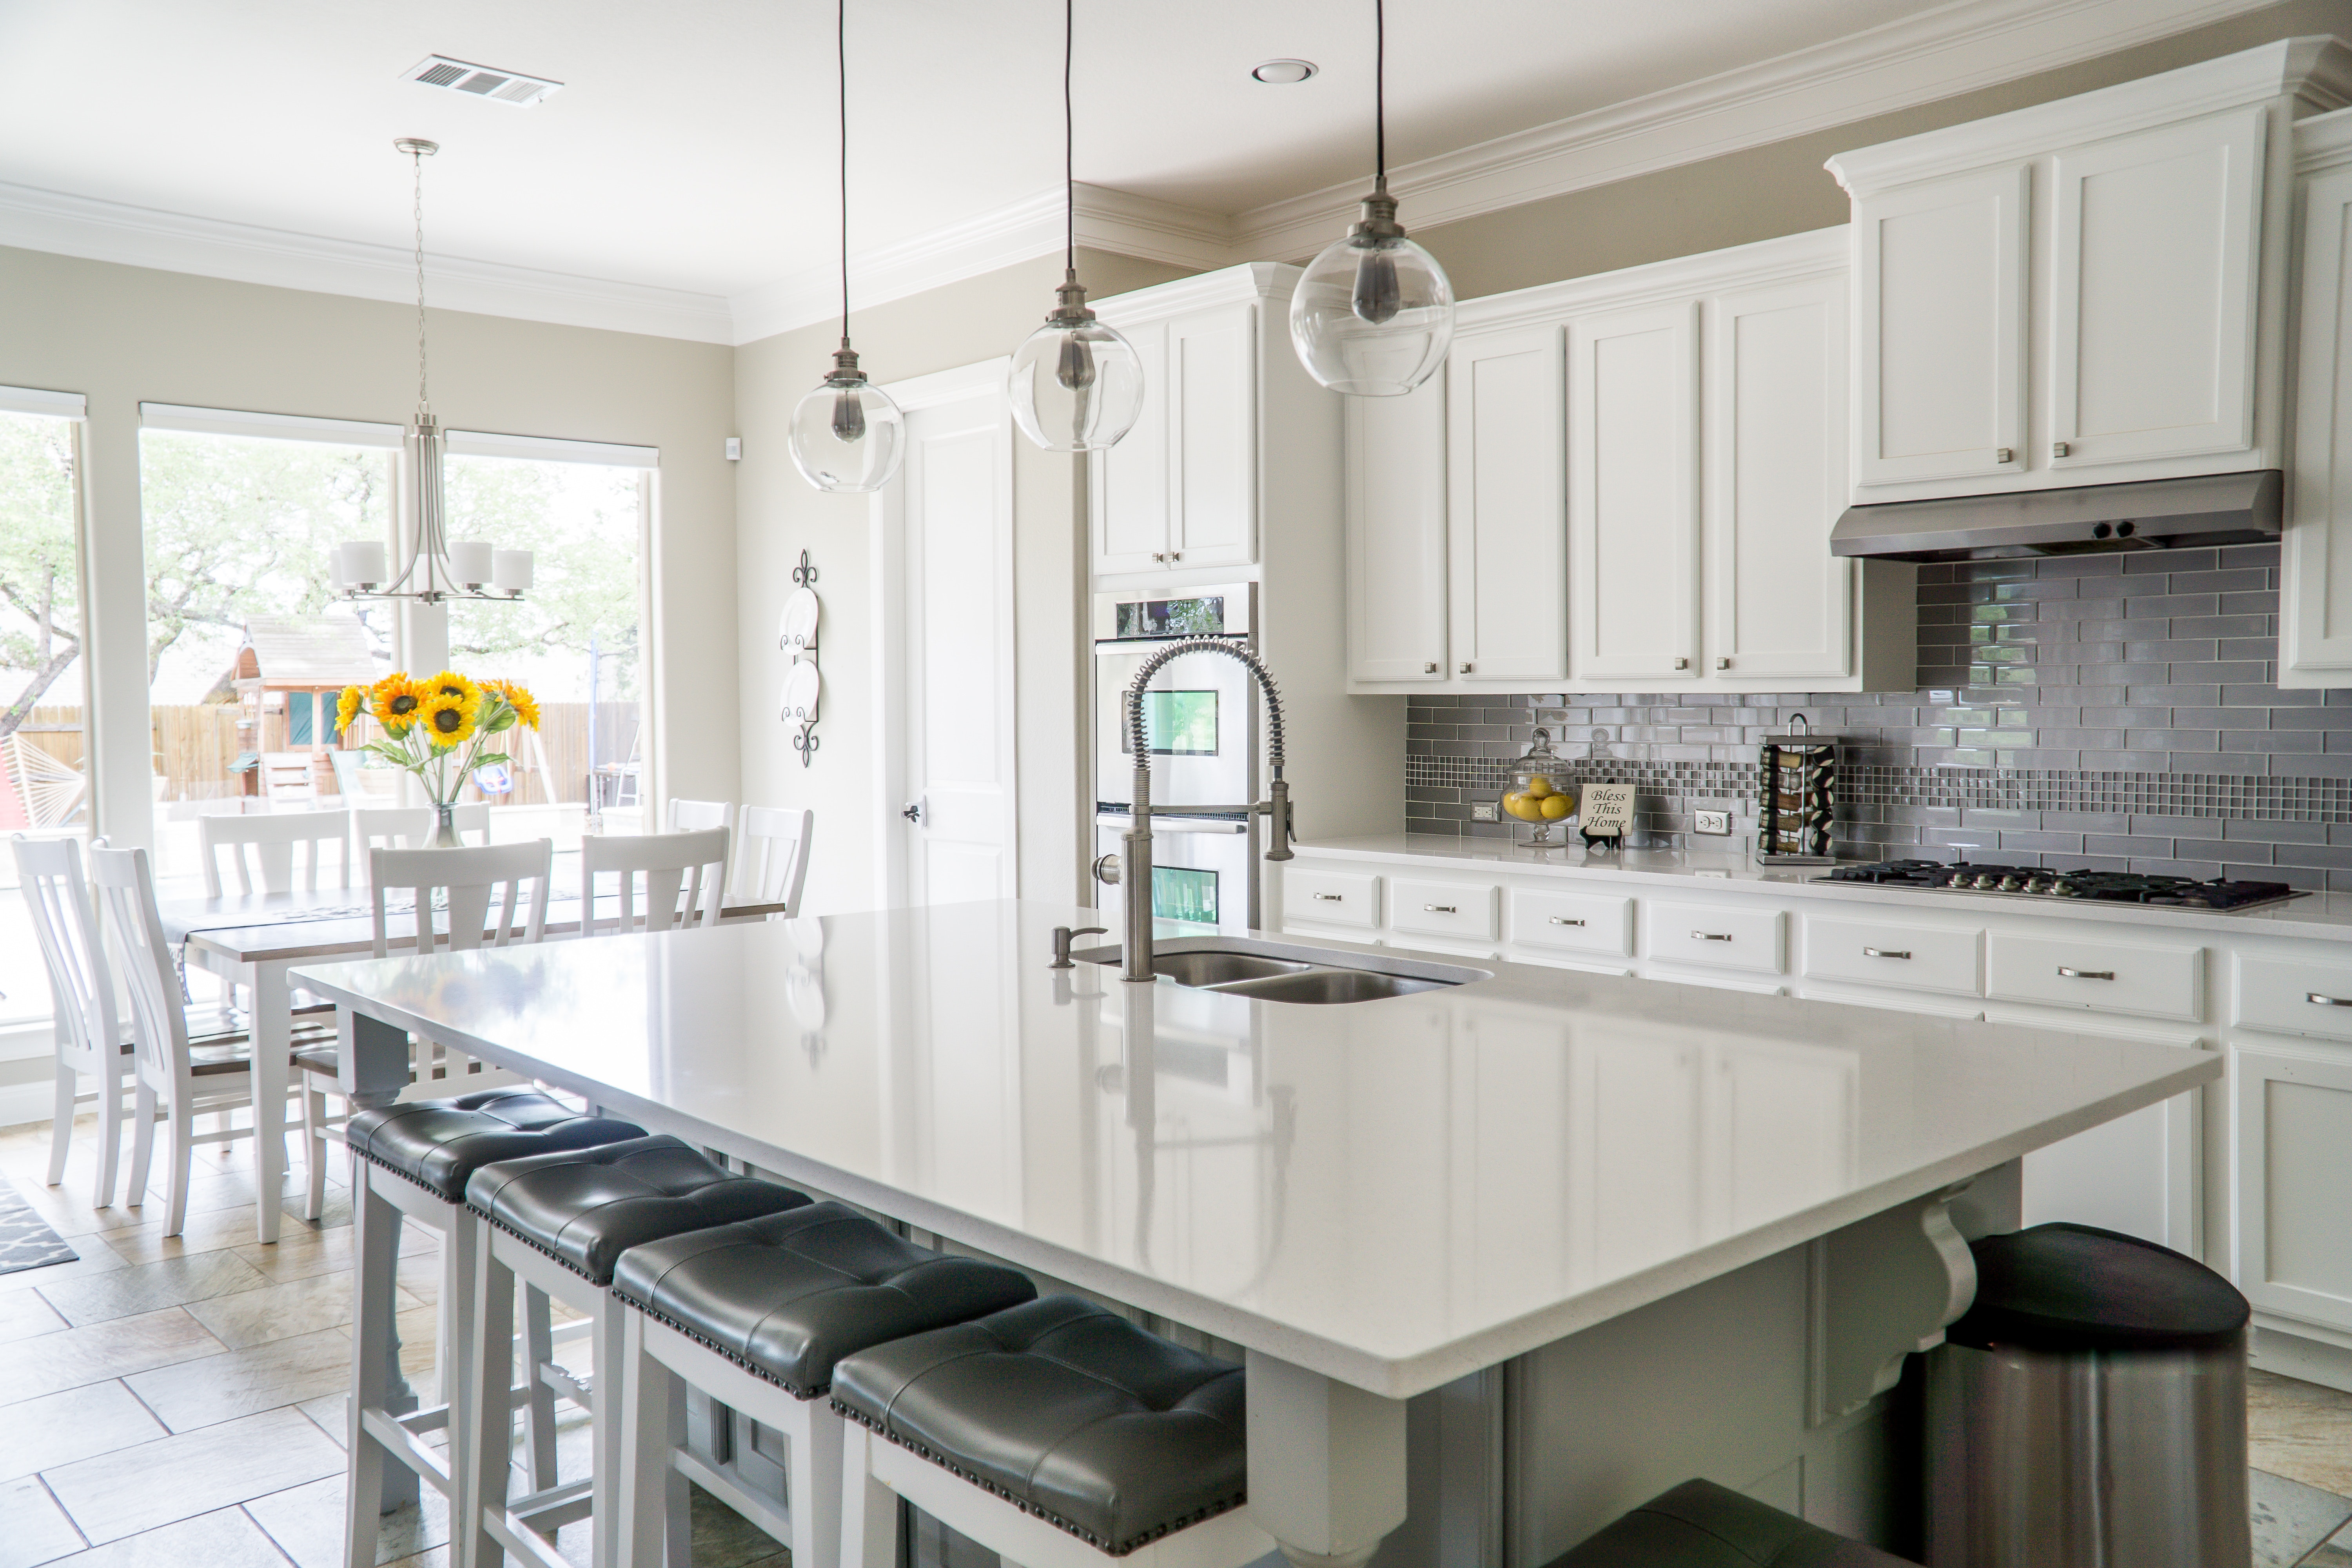 4 kitchen upgrades you need to make now